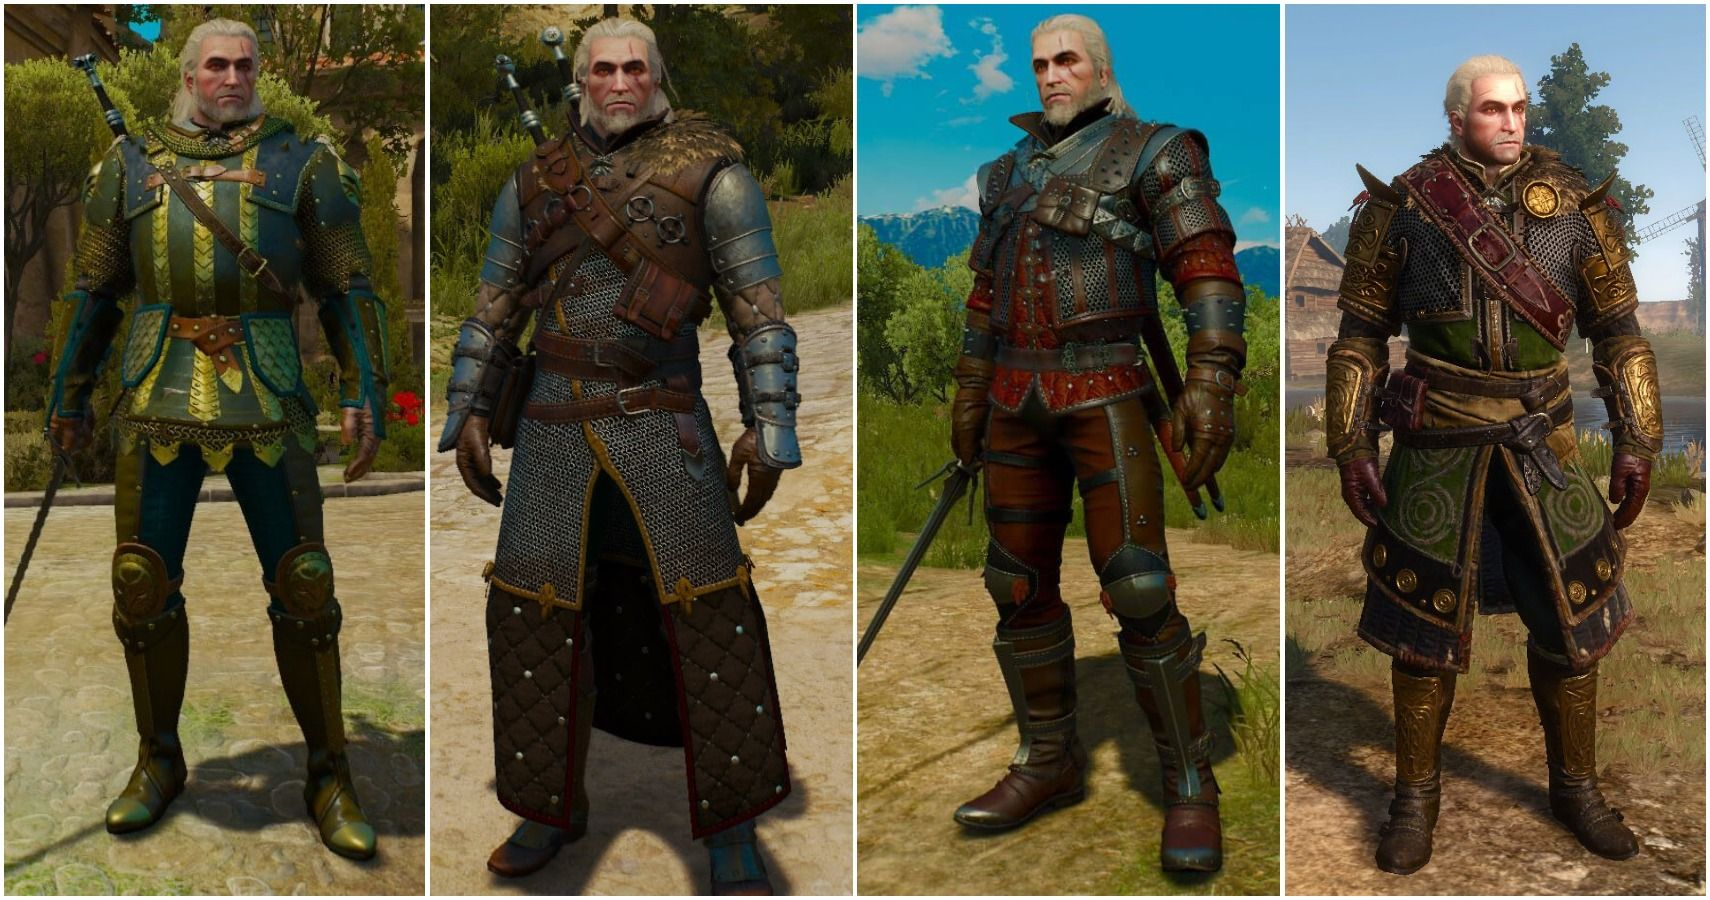 The Witcher 3 The 10 Coolest Looking Armor Sets Ranked Cbr